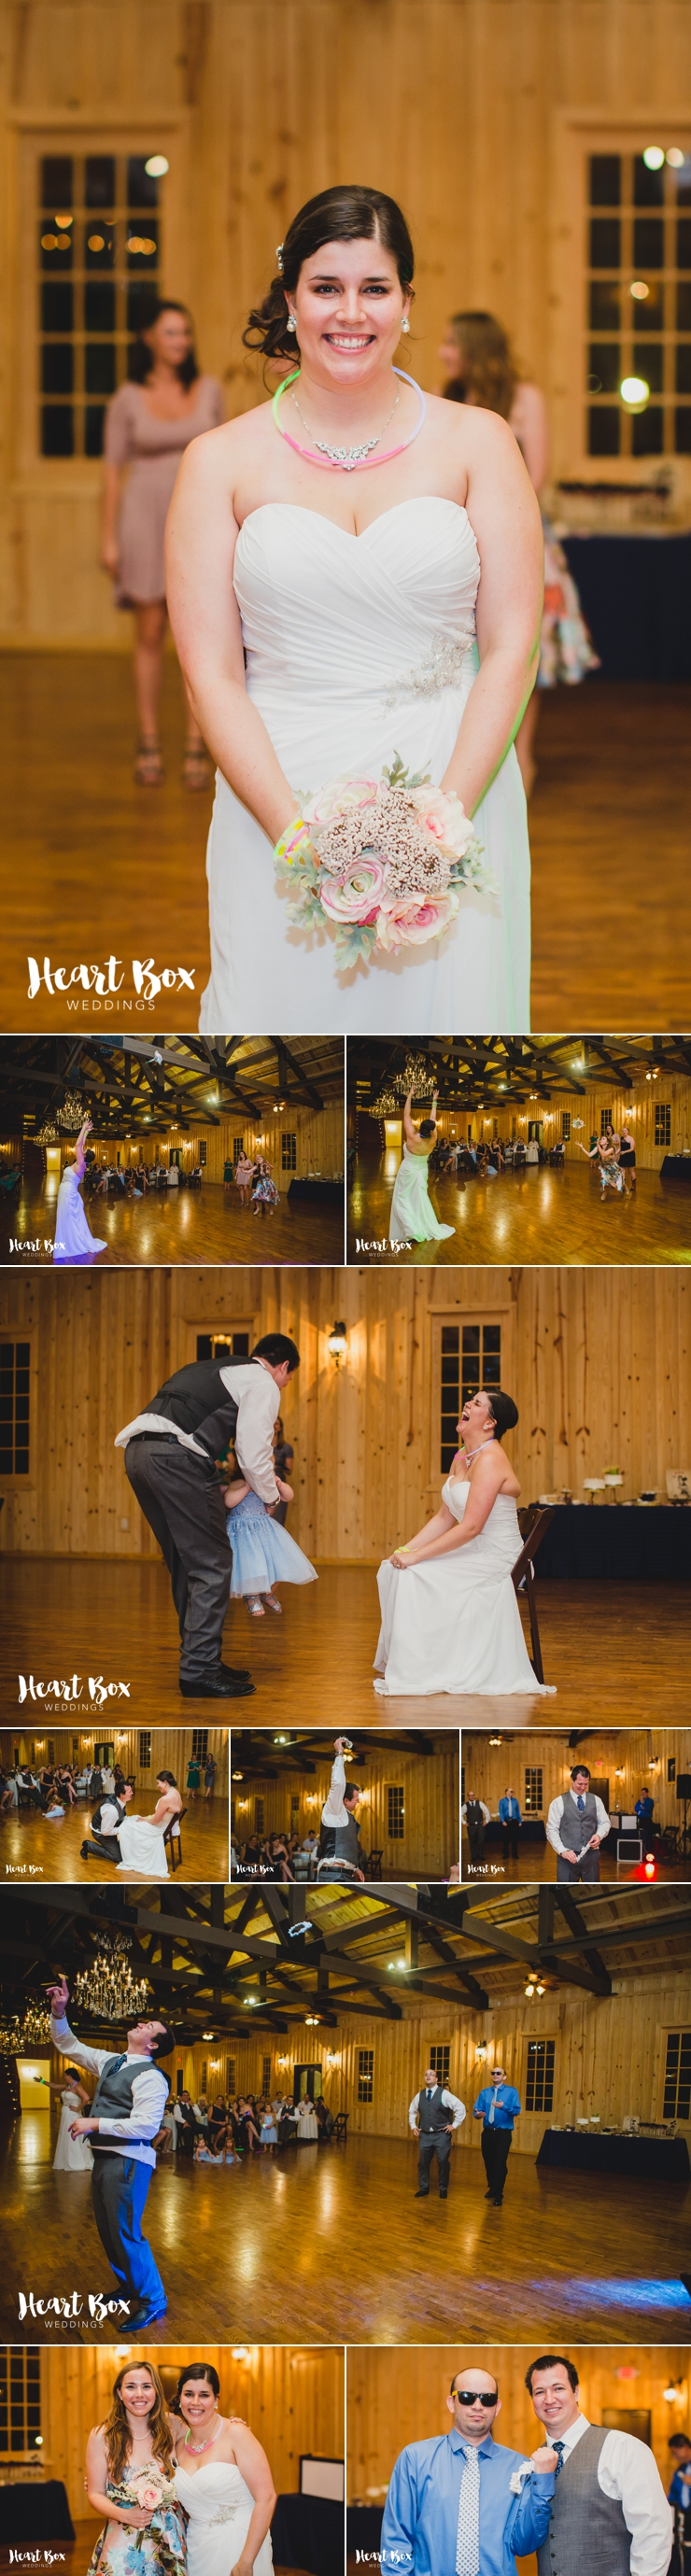 Waggoner Wedding Collages 20.jpg